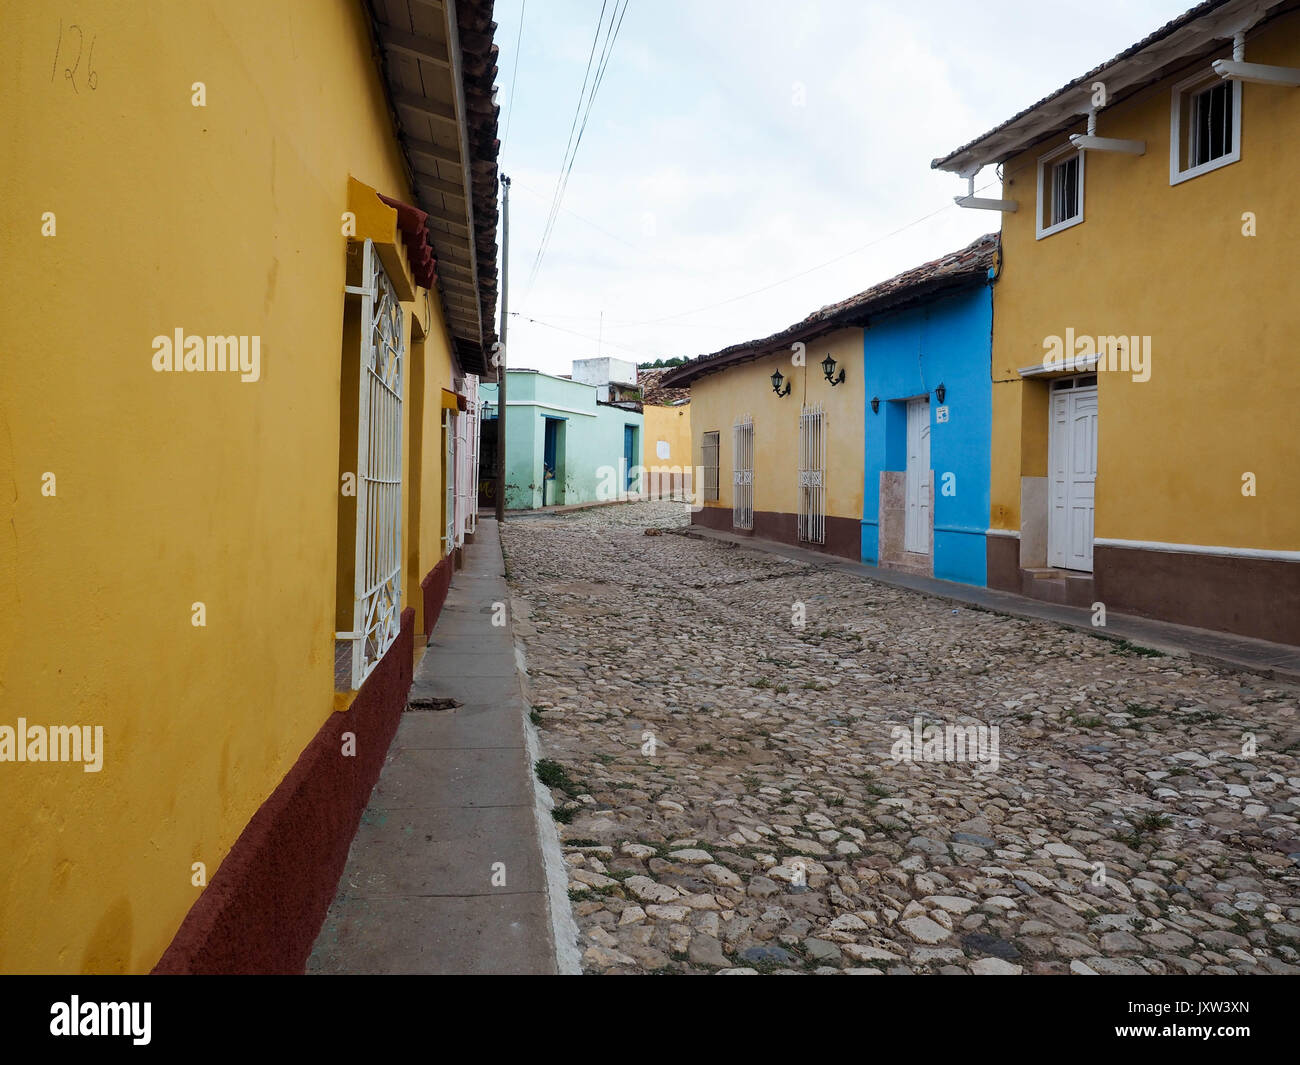 Street of Cuba the 06/30/2017 - Stock Image